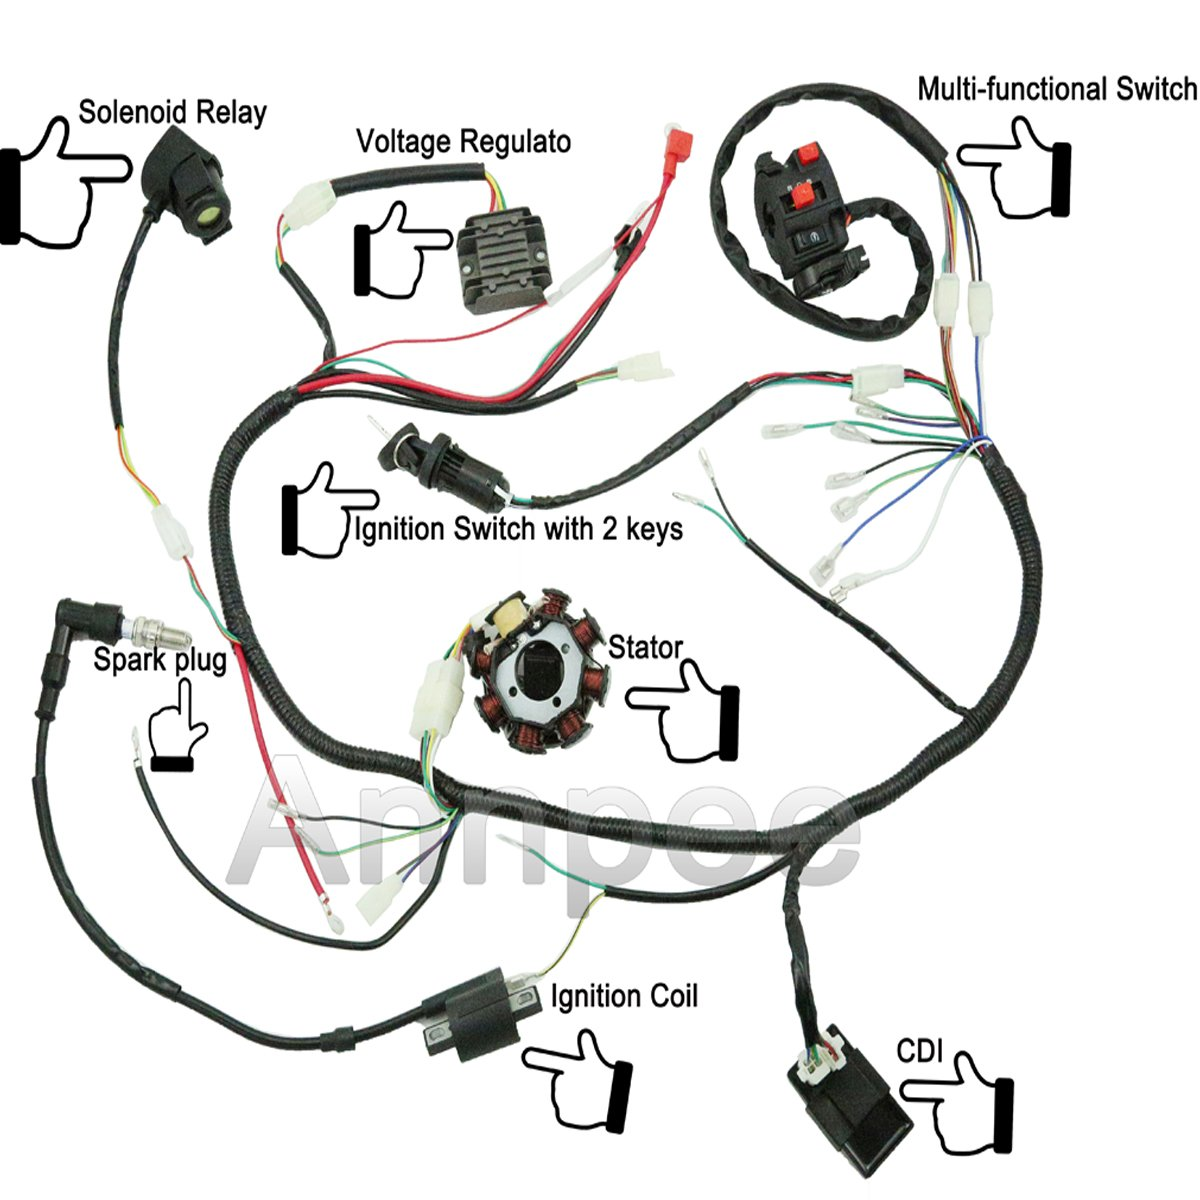 seaark 24v trolling motor wiring diagram 8beab4 zongshen 200 wiring diagram four wire system wiring resources  8beab4 zongshen 200 wiring diagram four